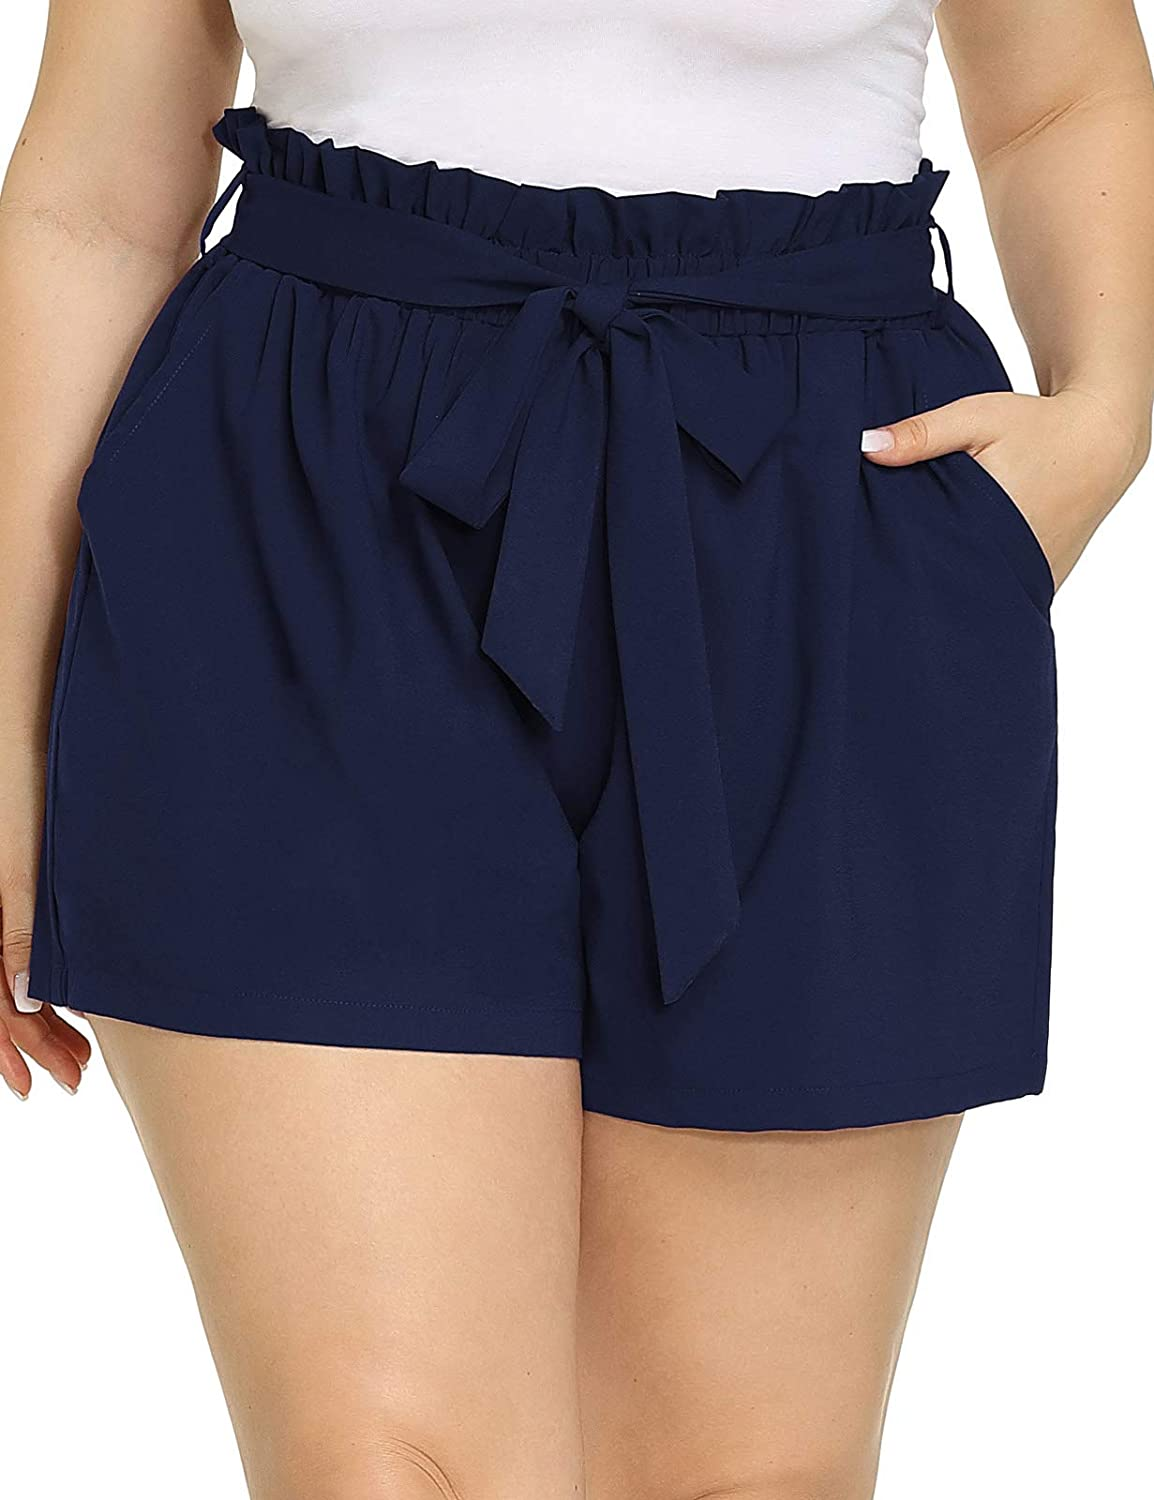 Hanna Nikole Paper Bag Shorts for Women Plus Size High Waisted Elastic Waist Shorts with Pockets